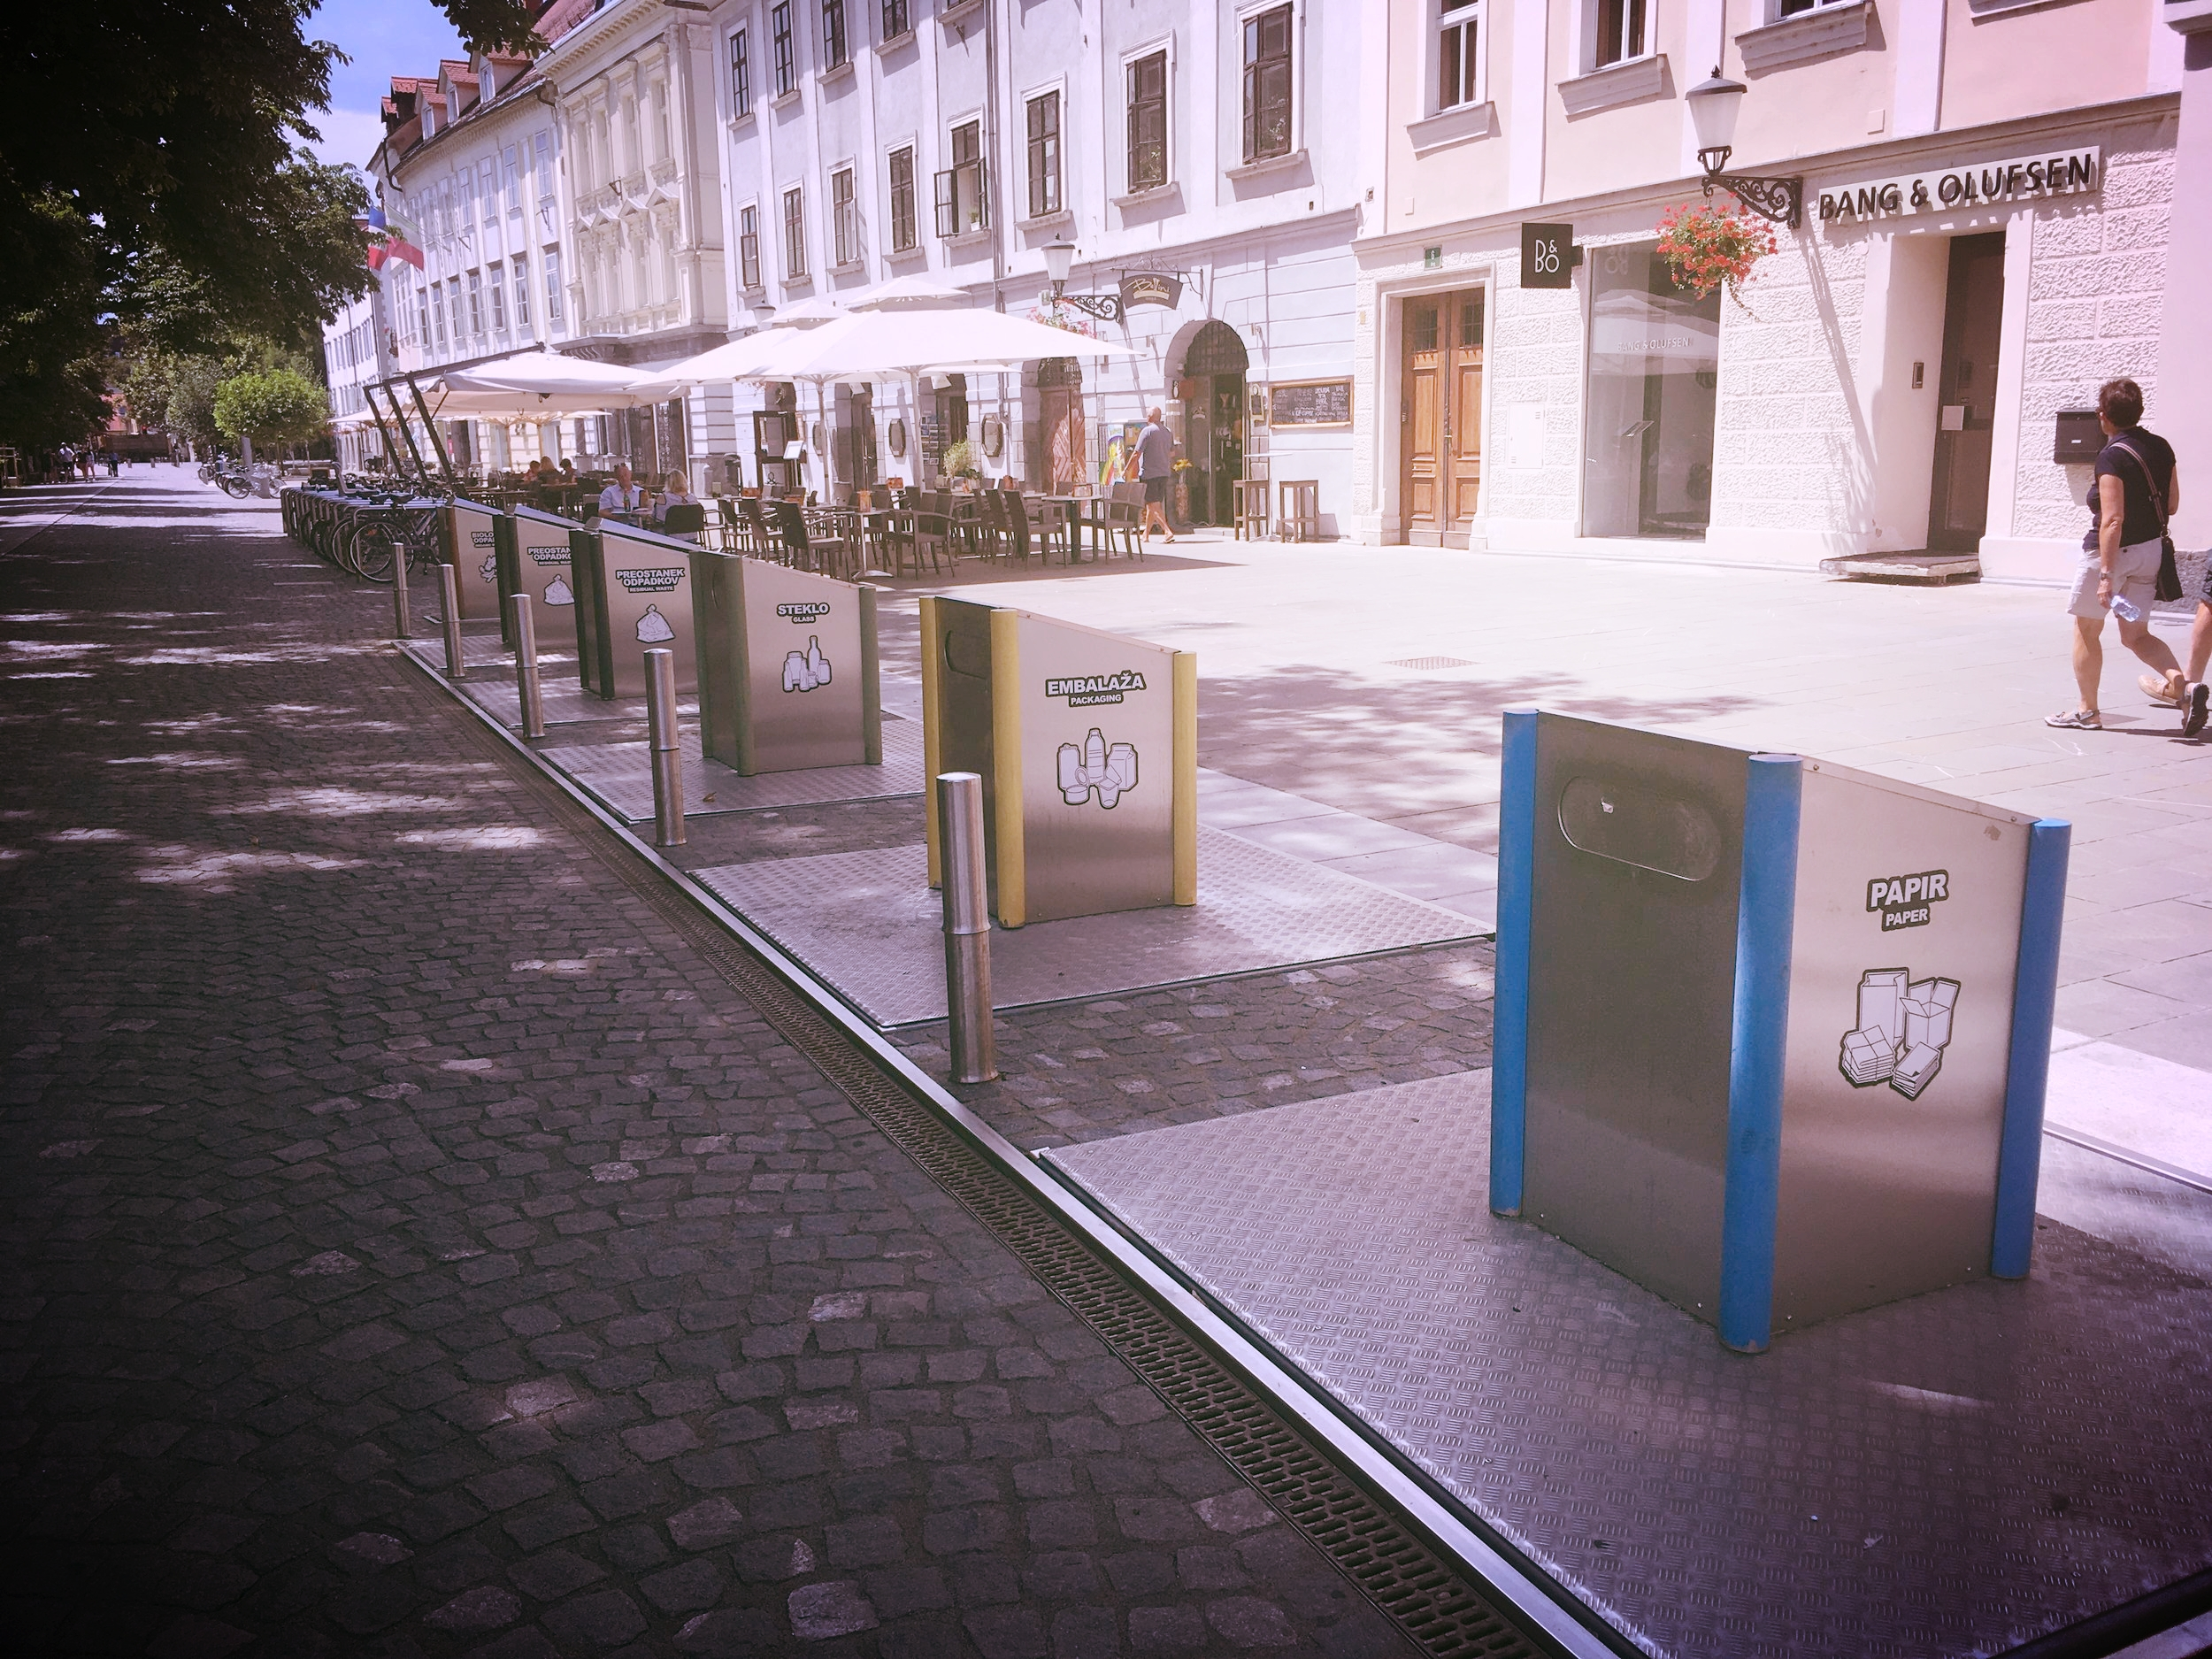 I'm really digging this amazing recycling system. So many cities should follow suite!